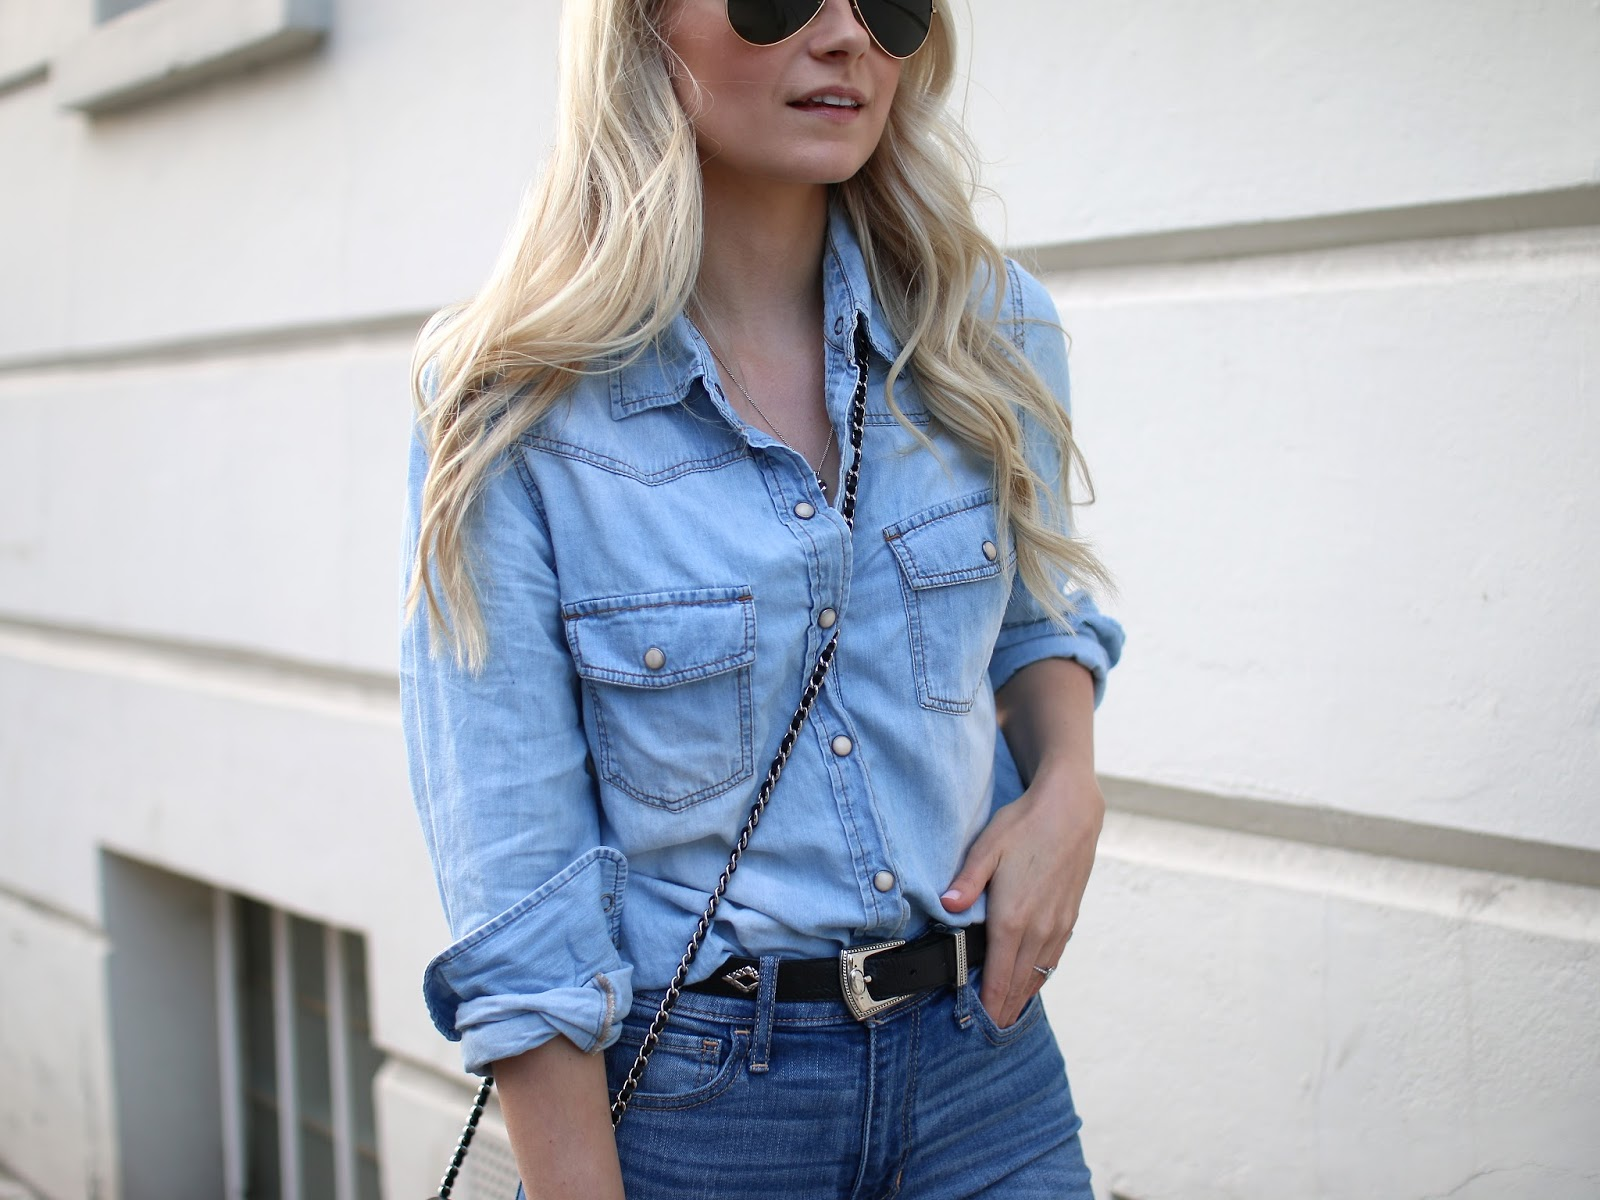 a blonde women poses for picture at sunset in an all blue outfit and vintage western belt and chanel purse